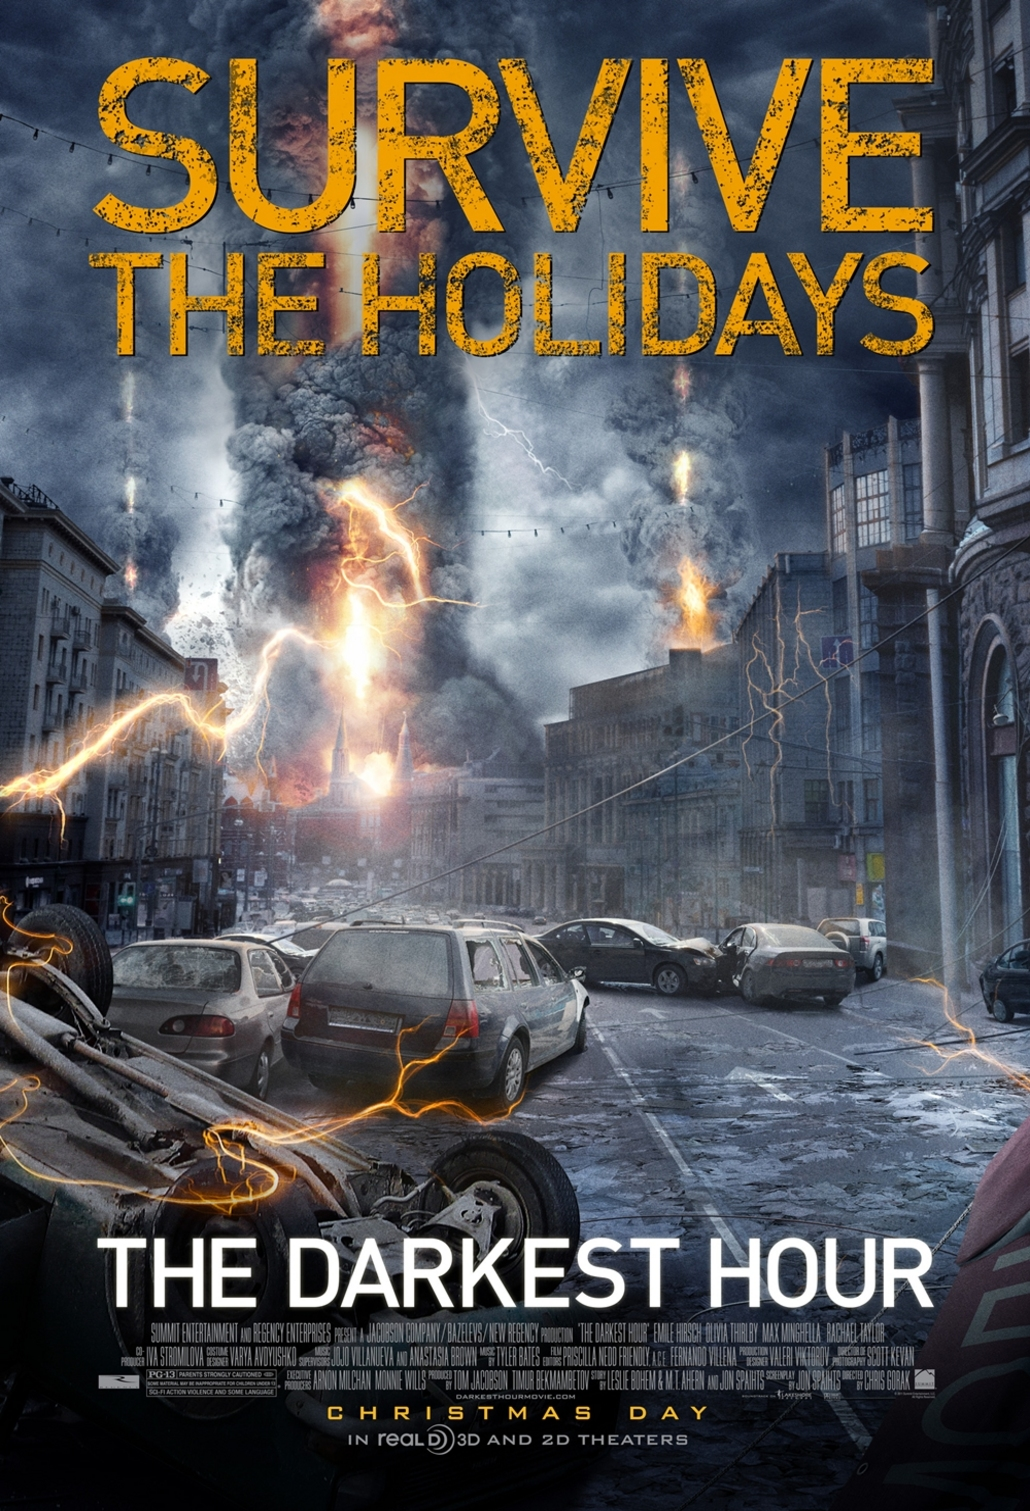 The Darkest Hour - Movie Poster #1 (Original)